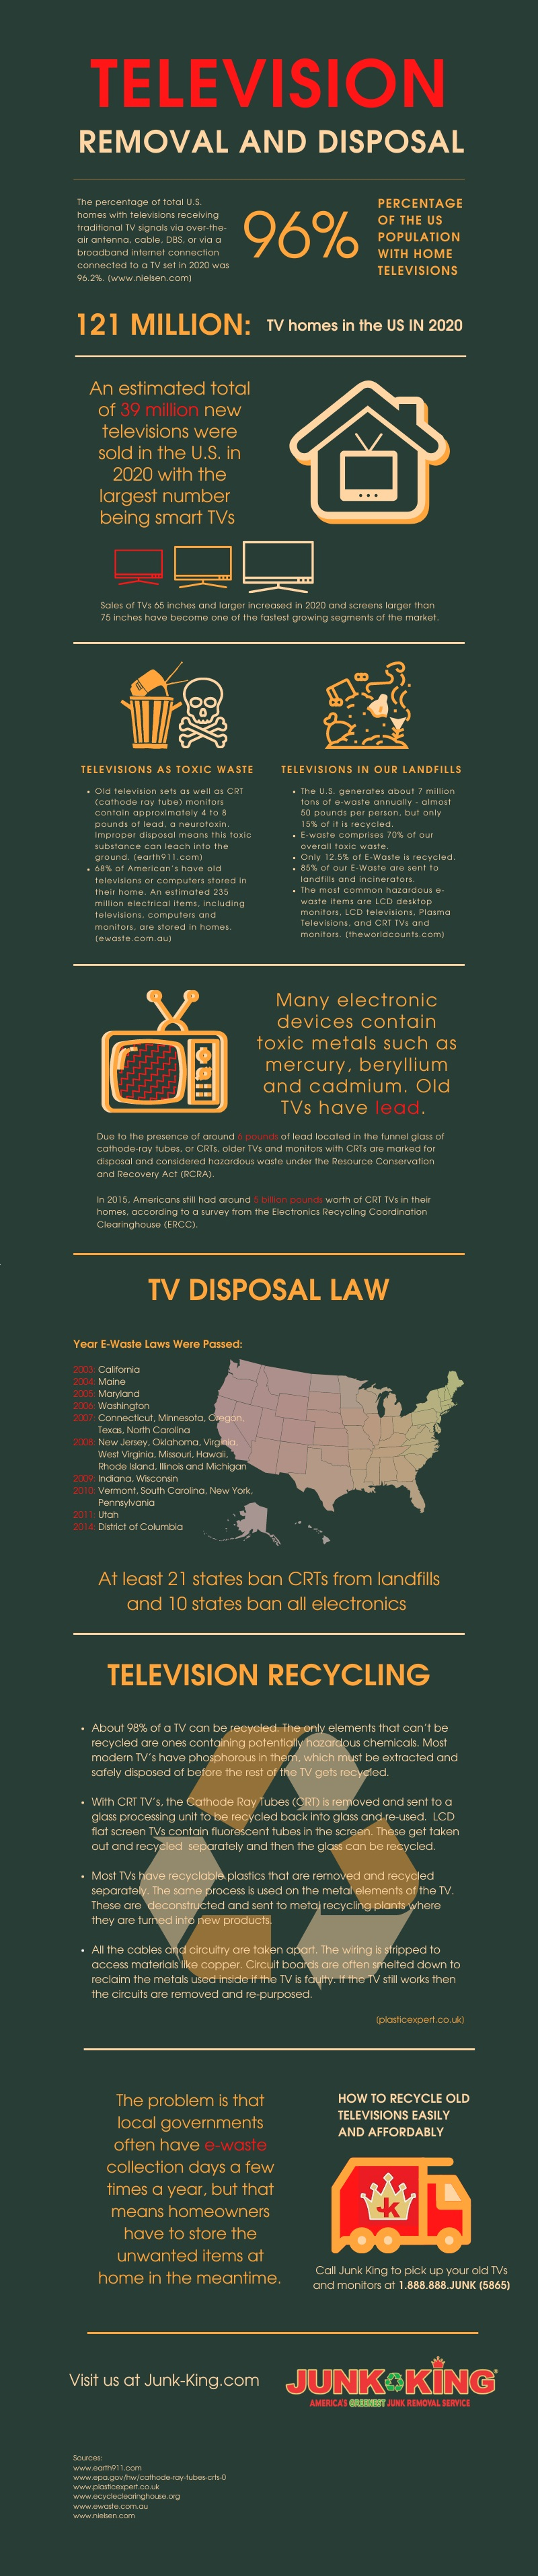 television-removal-and-disposal